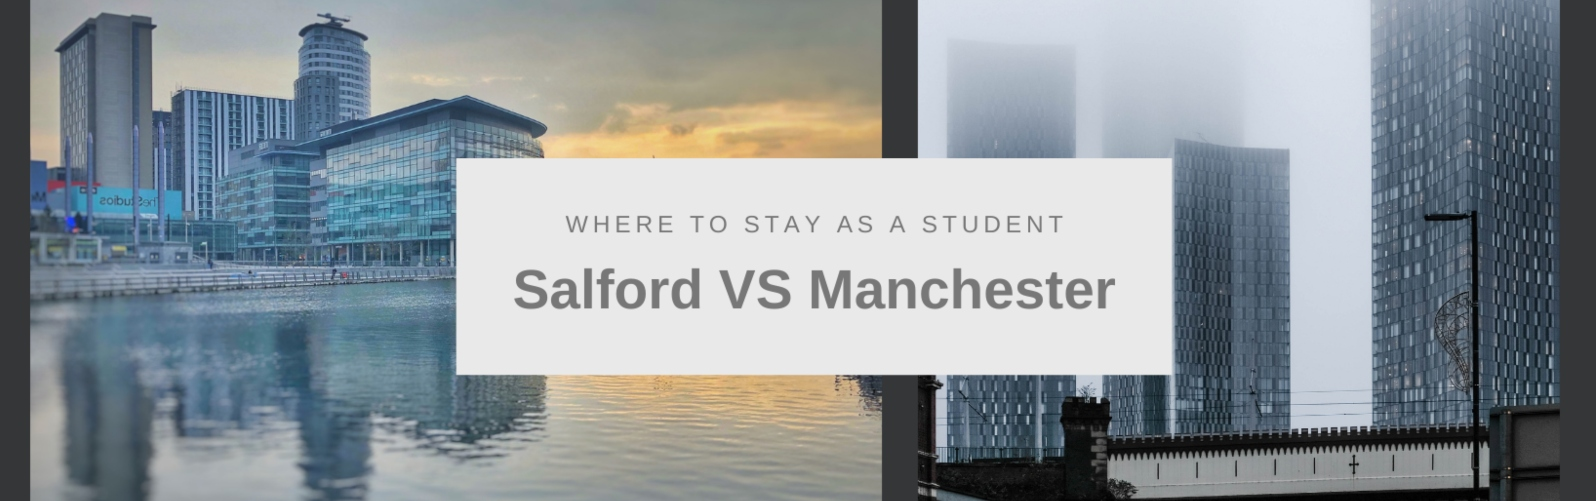 Salford vs Manchester - where to live as a student?